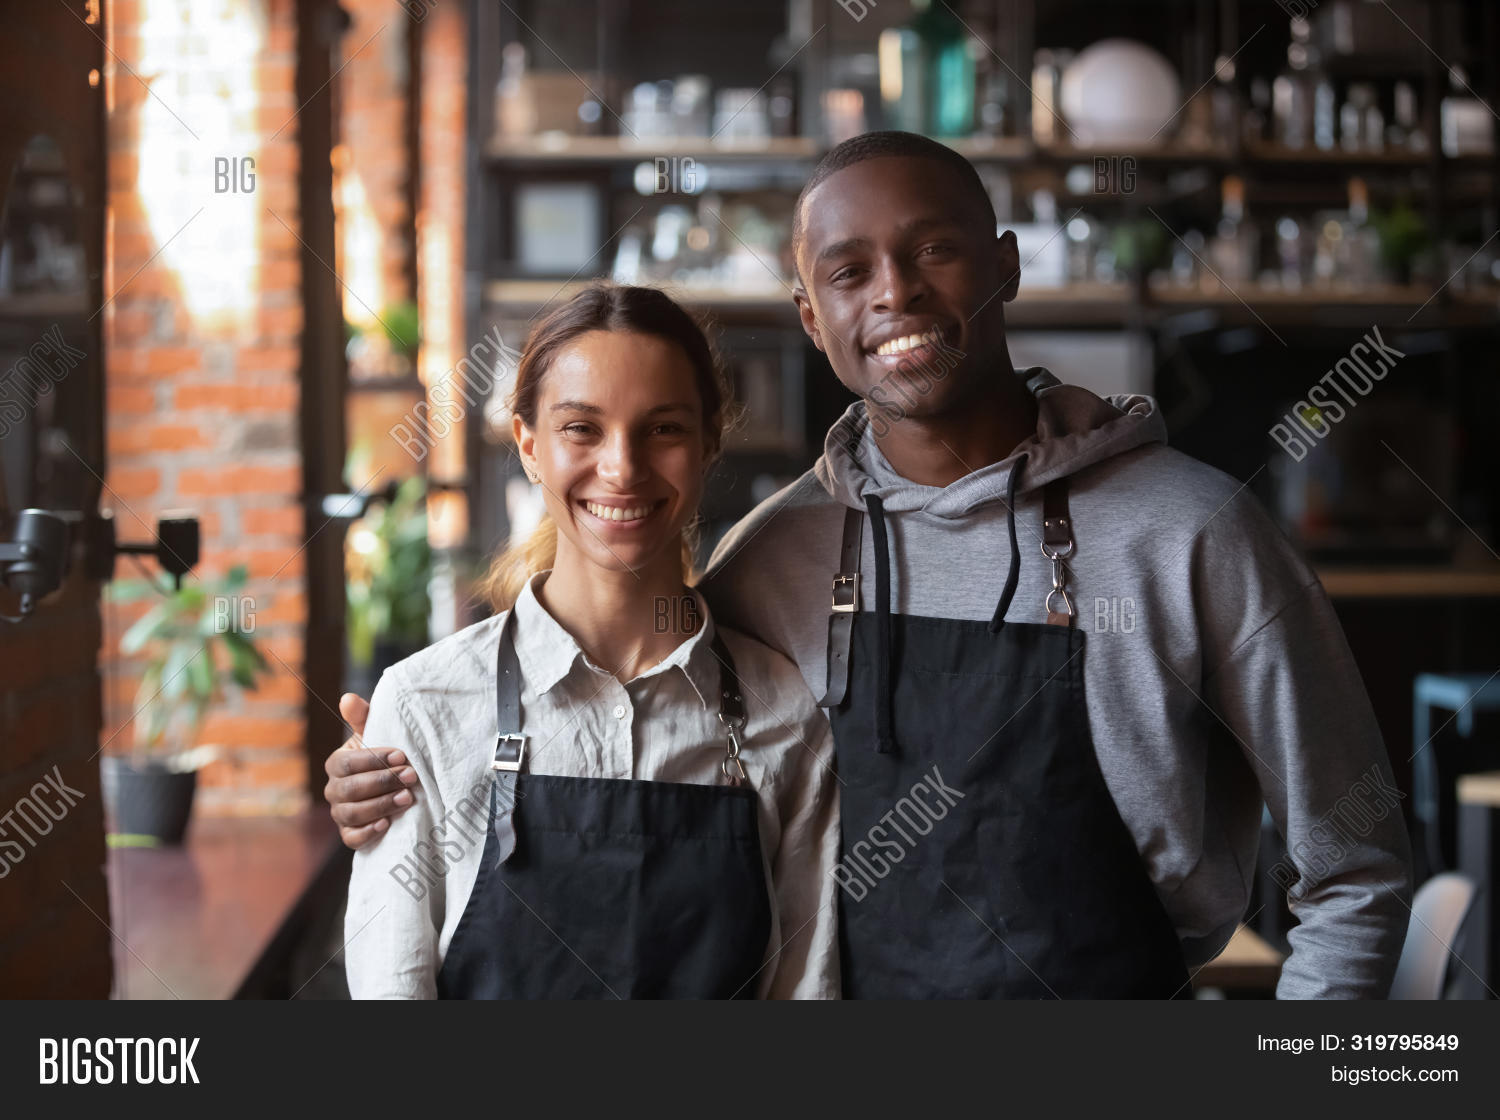 Happy Diverse Waiter Image Photo Free Trial Bigstock